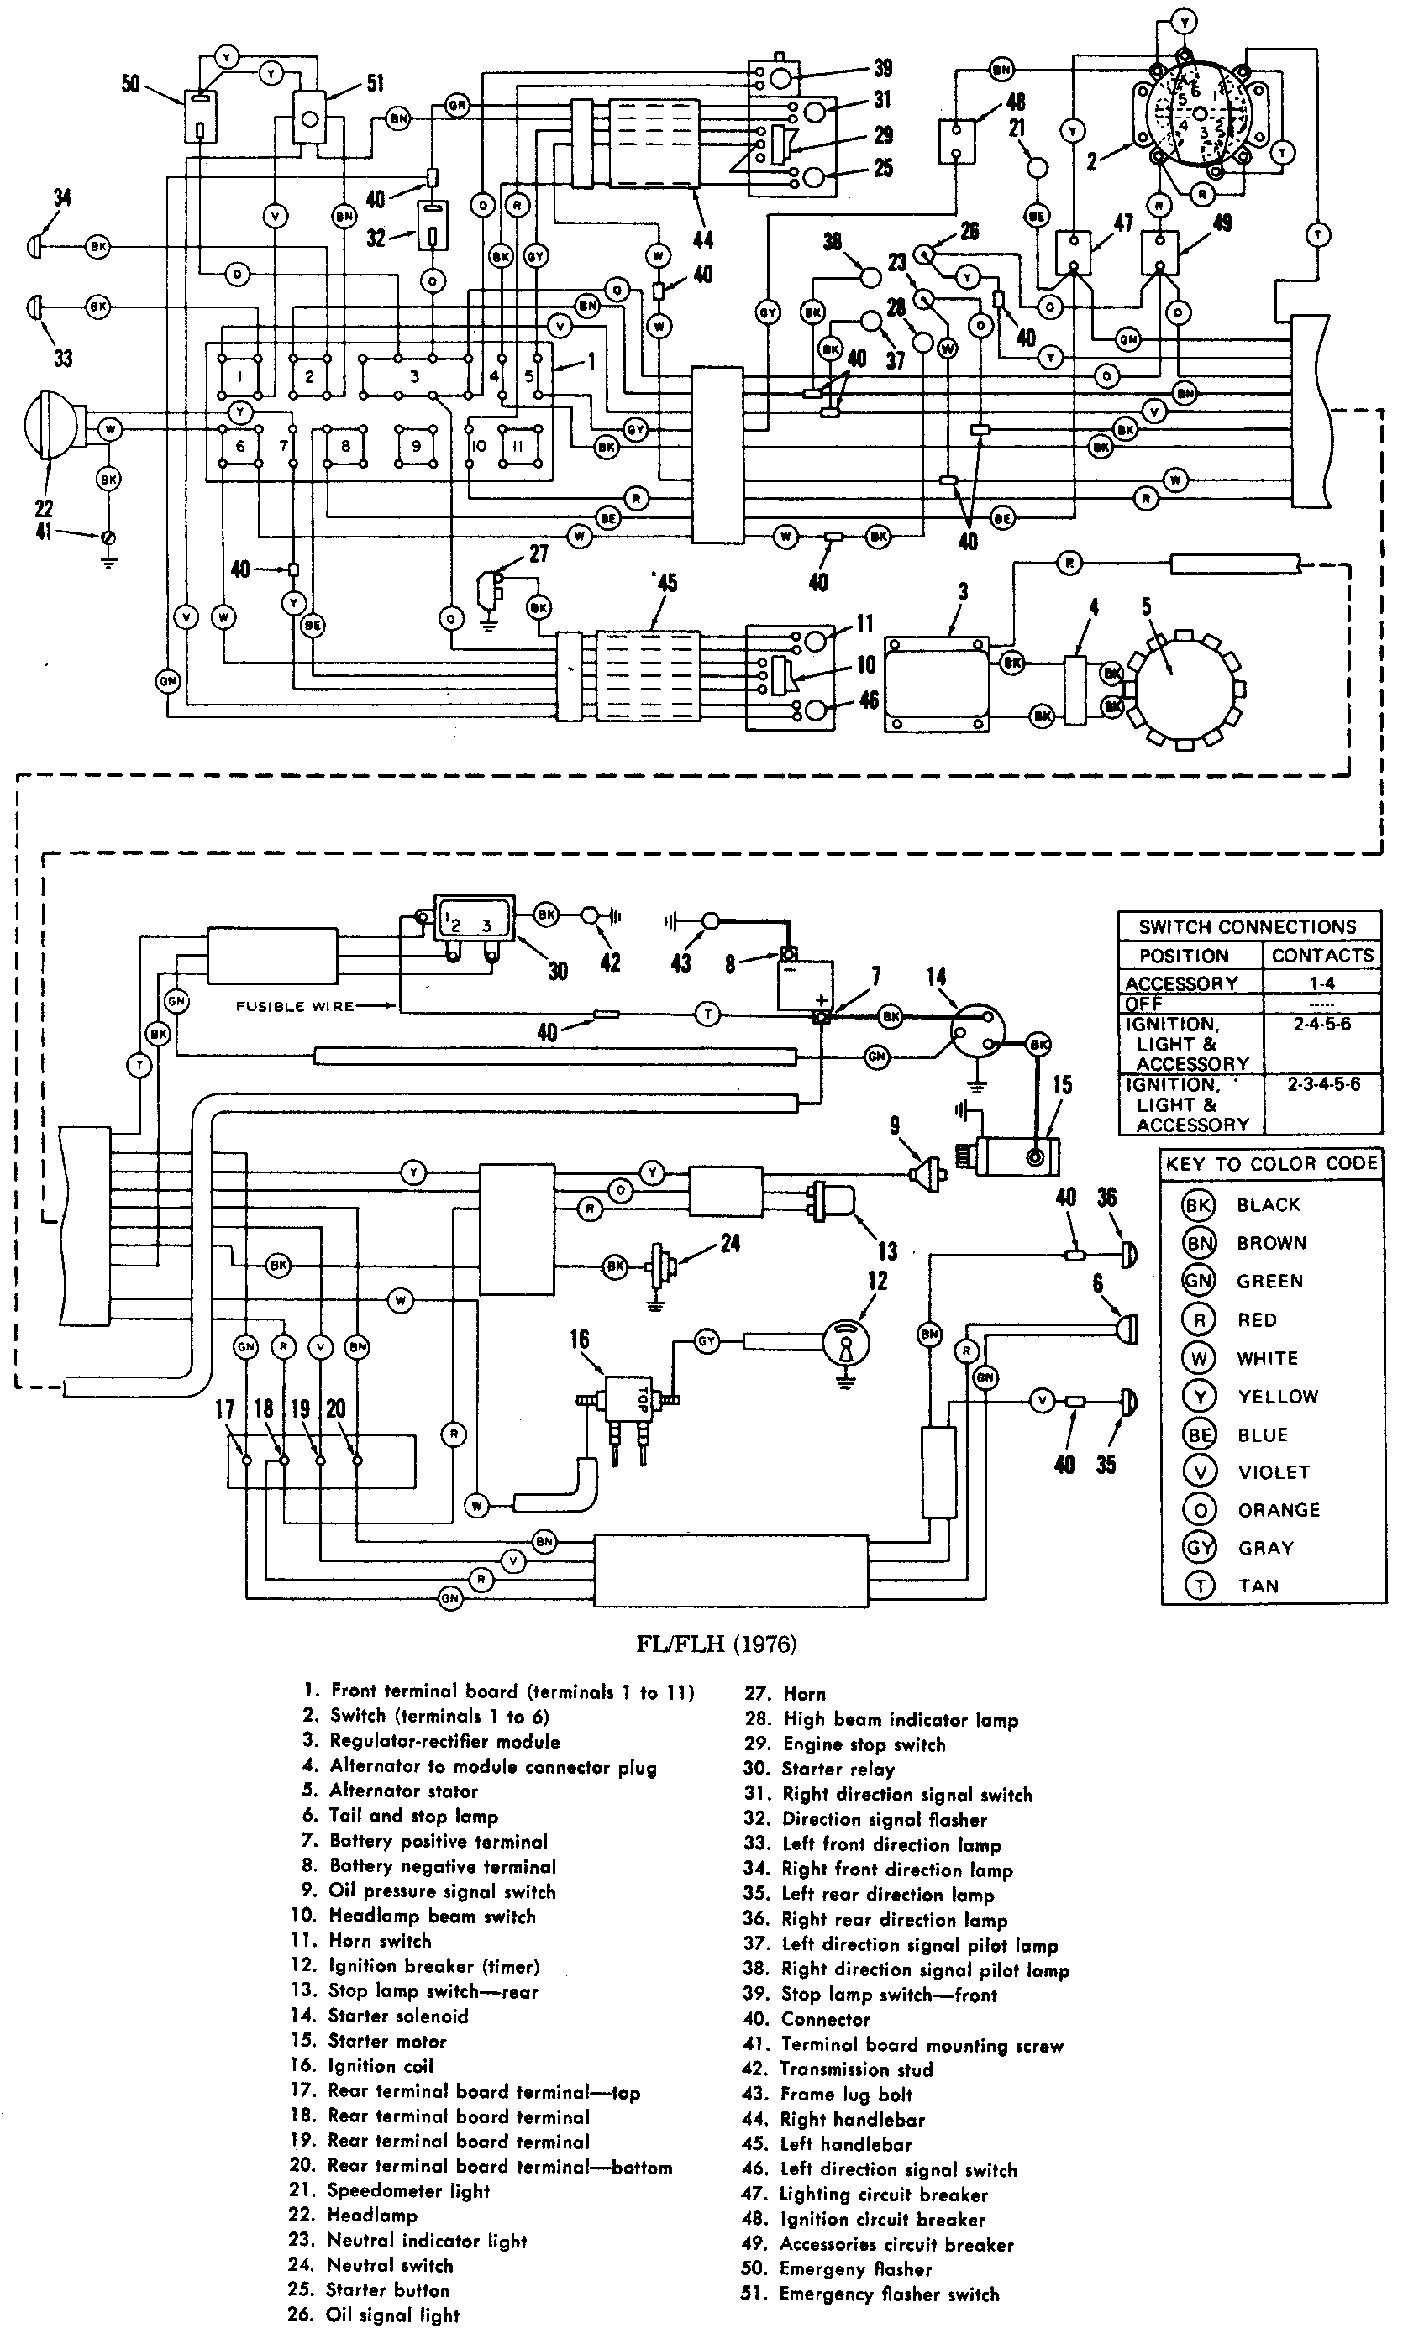 Flh Wiring Diagram | Wiring Diagram - Harley Davidson Radio Wiring Diagram